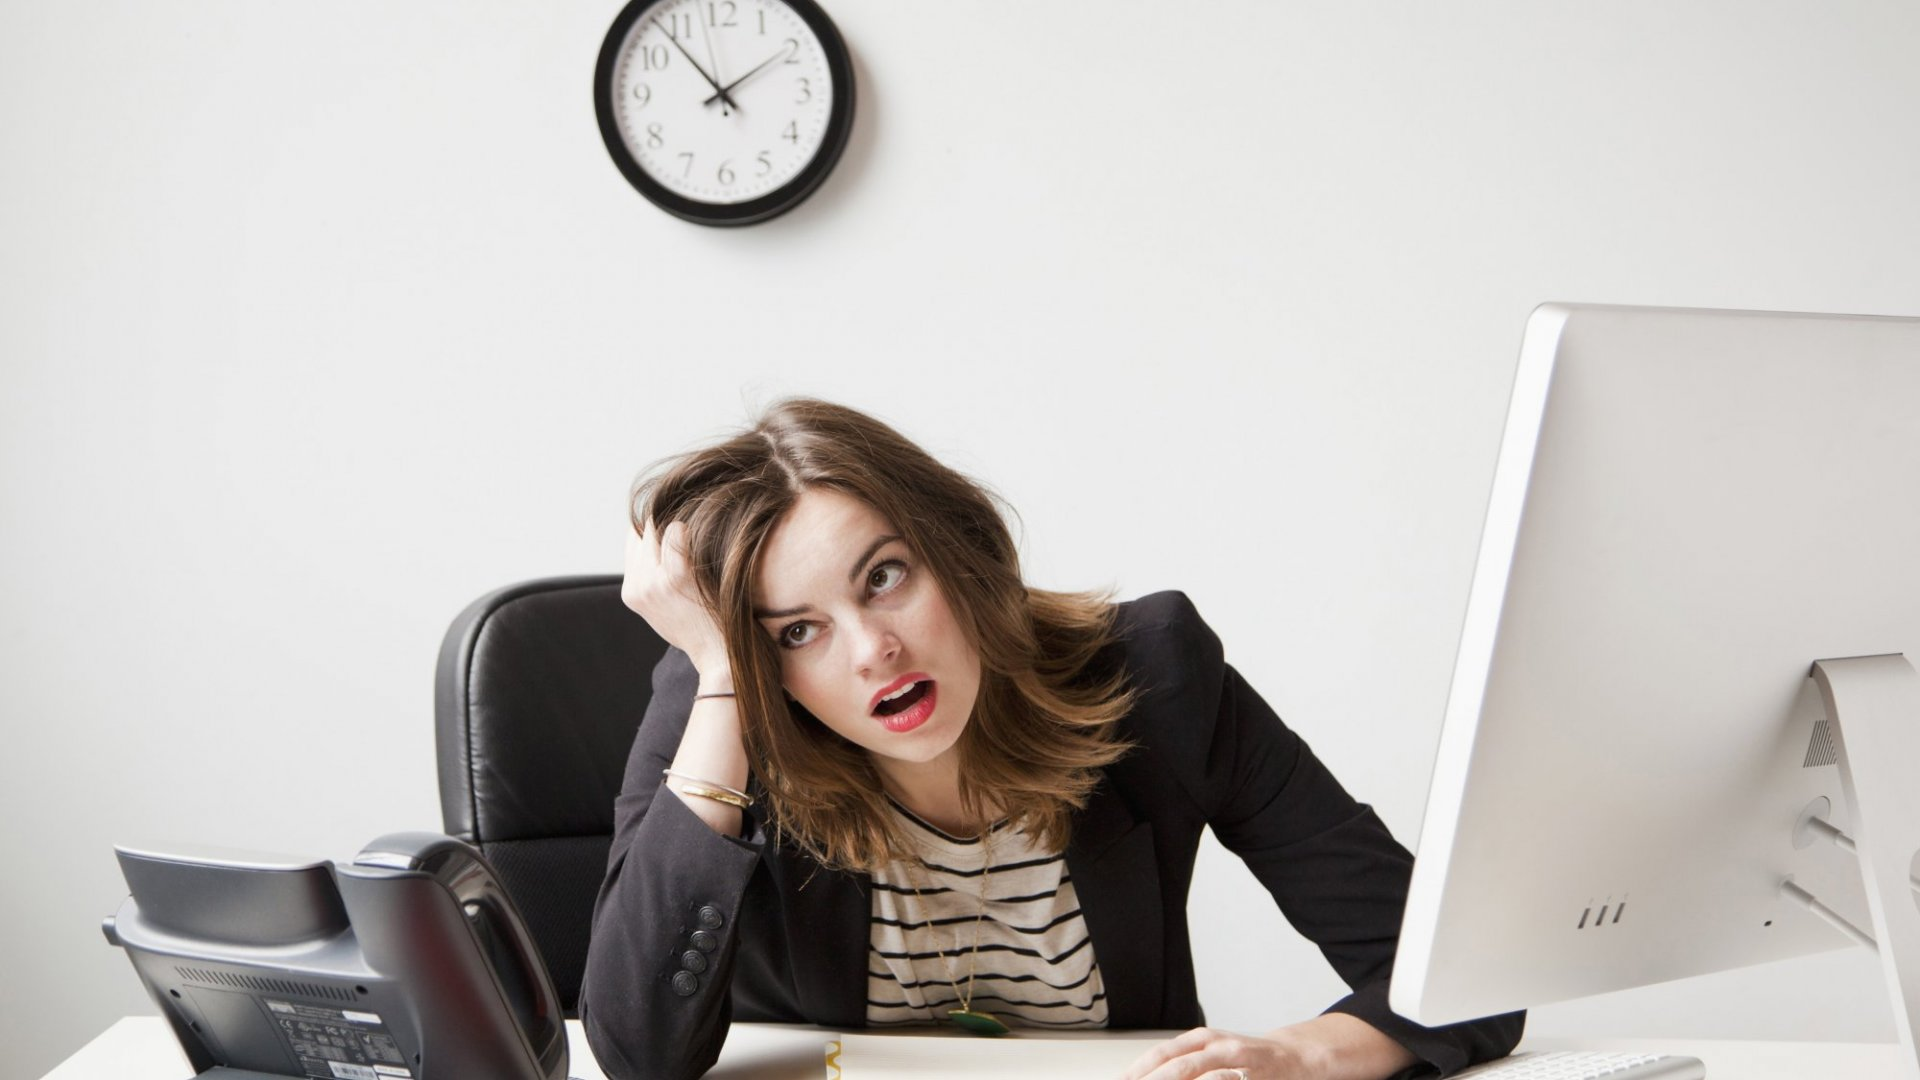 Stressed at Work? 7 Steps to Fix That